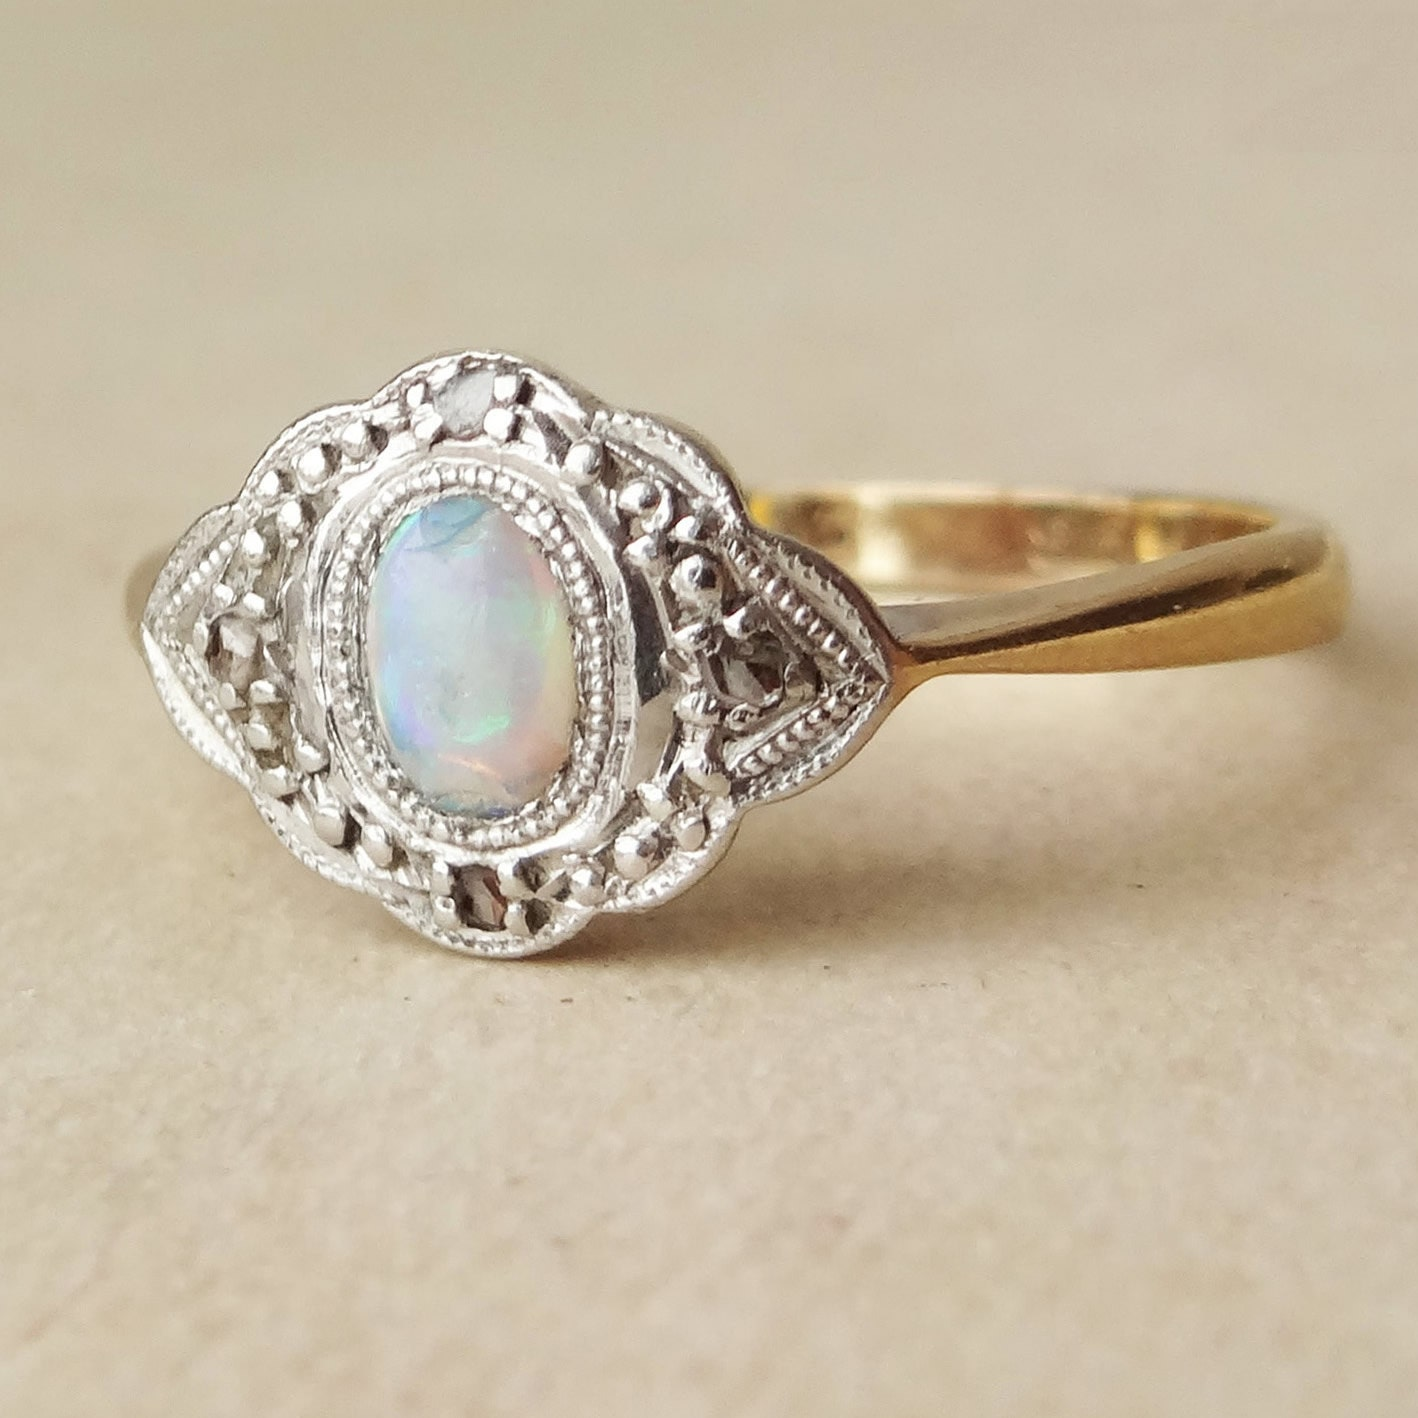 Opal Engagement Rings: Art Deco Fiery Opal Diamond And 9k Gold Engagement Ring